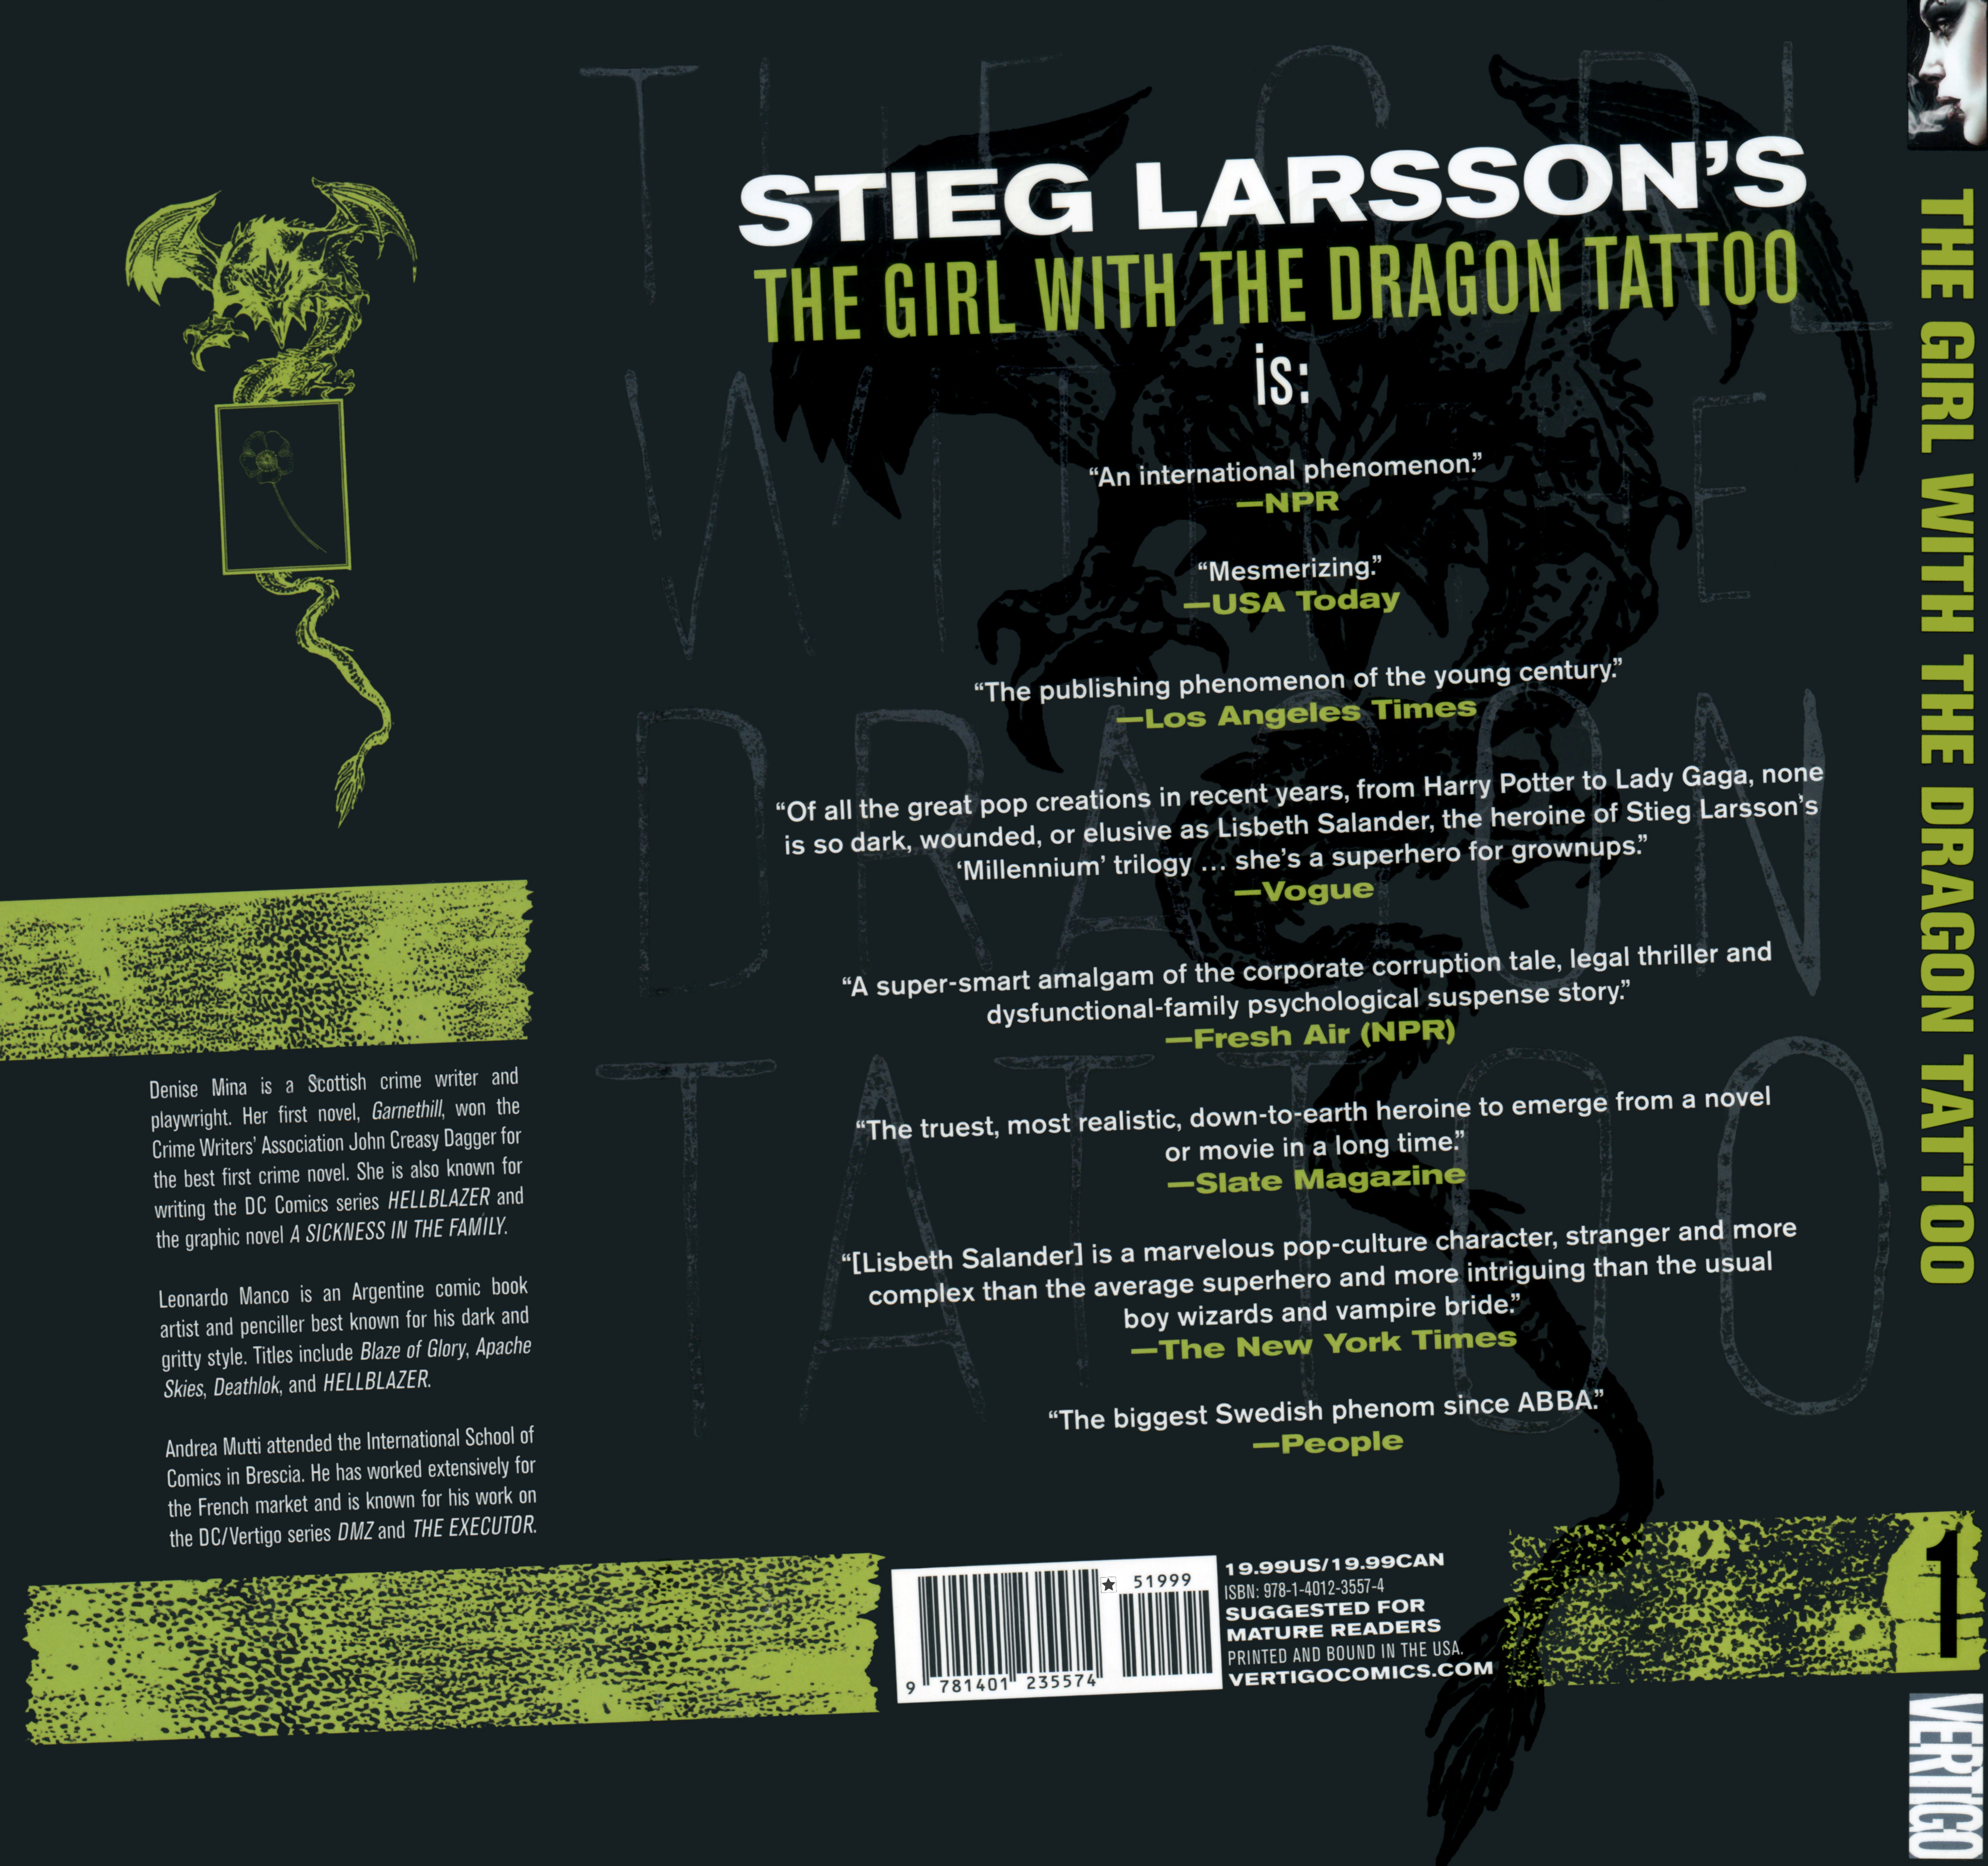 Read online The Girl With the Dragon Tattoo comic -  Issue # TPB 1 - 156